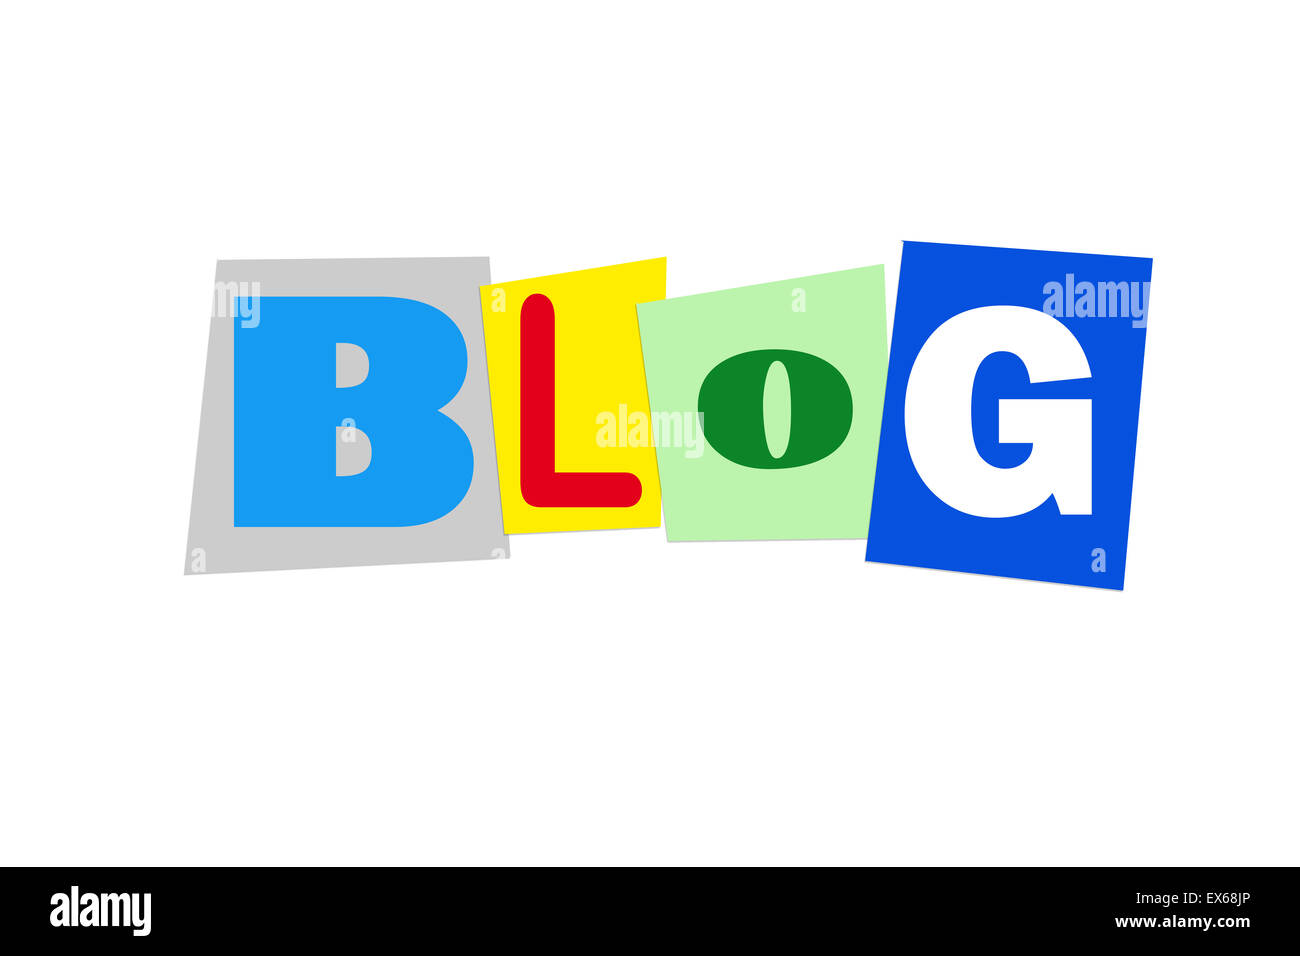 blog in colorful cut out letters - Stock Image